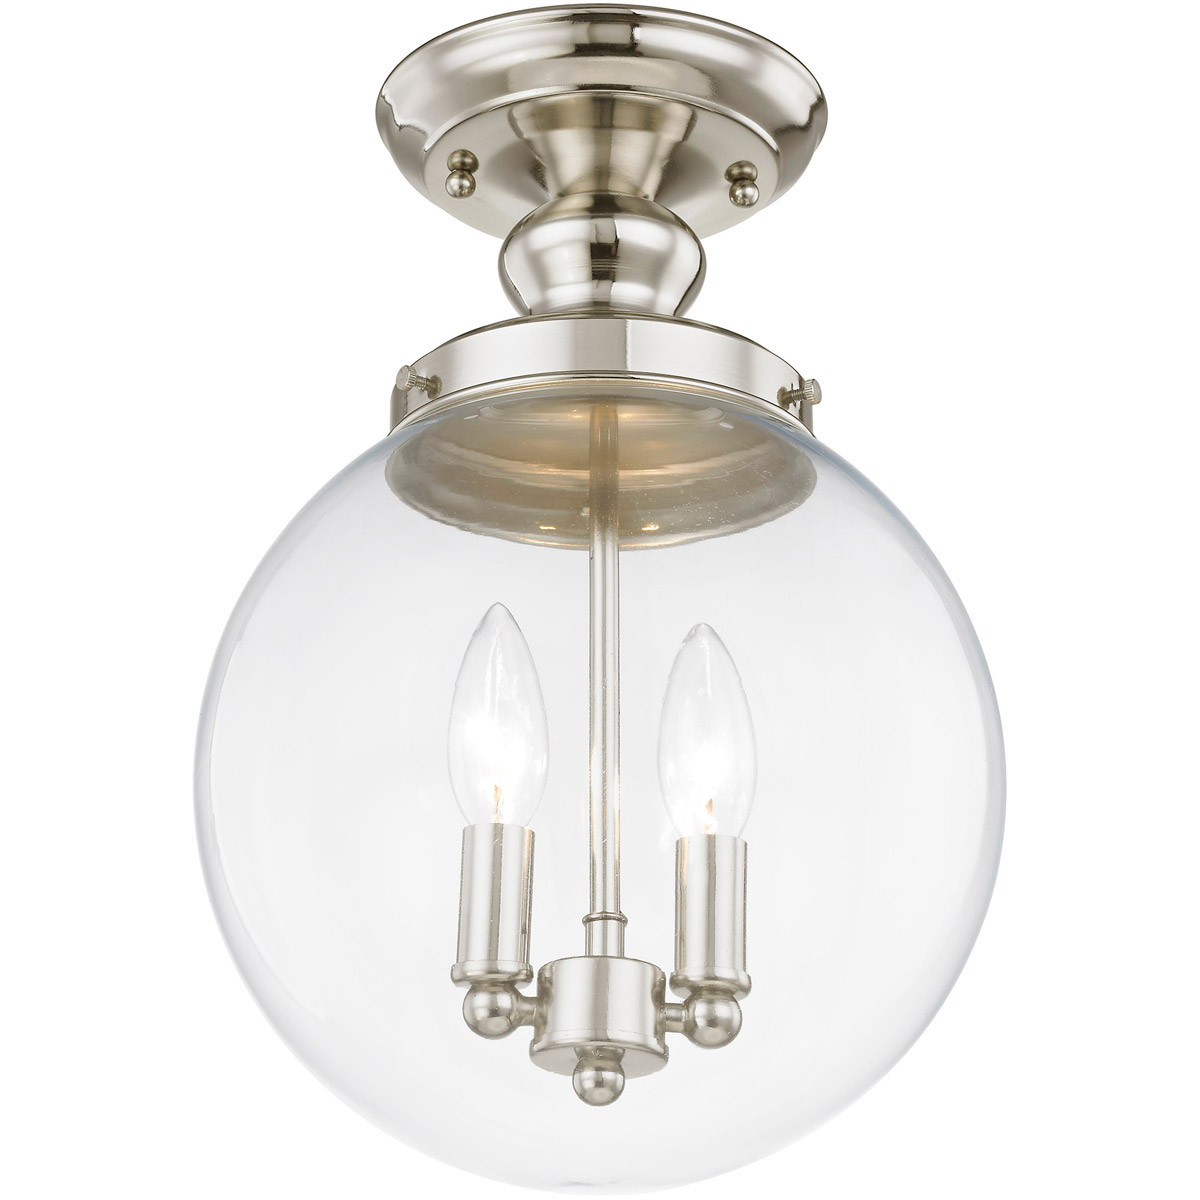 Livex Lighting 50481-35 Polished Nickel Flush Mount with Clear Glass